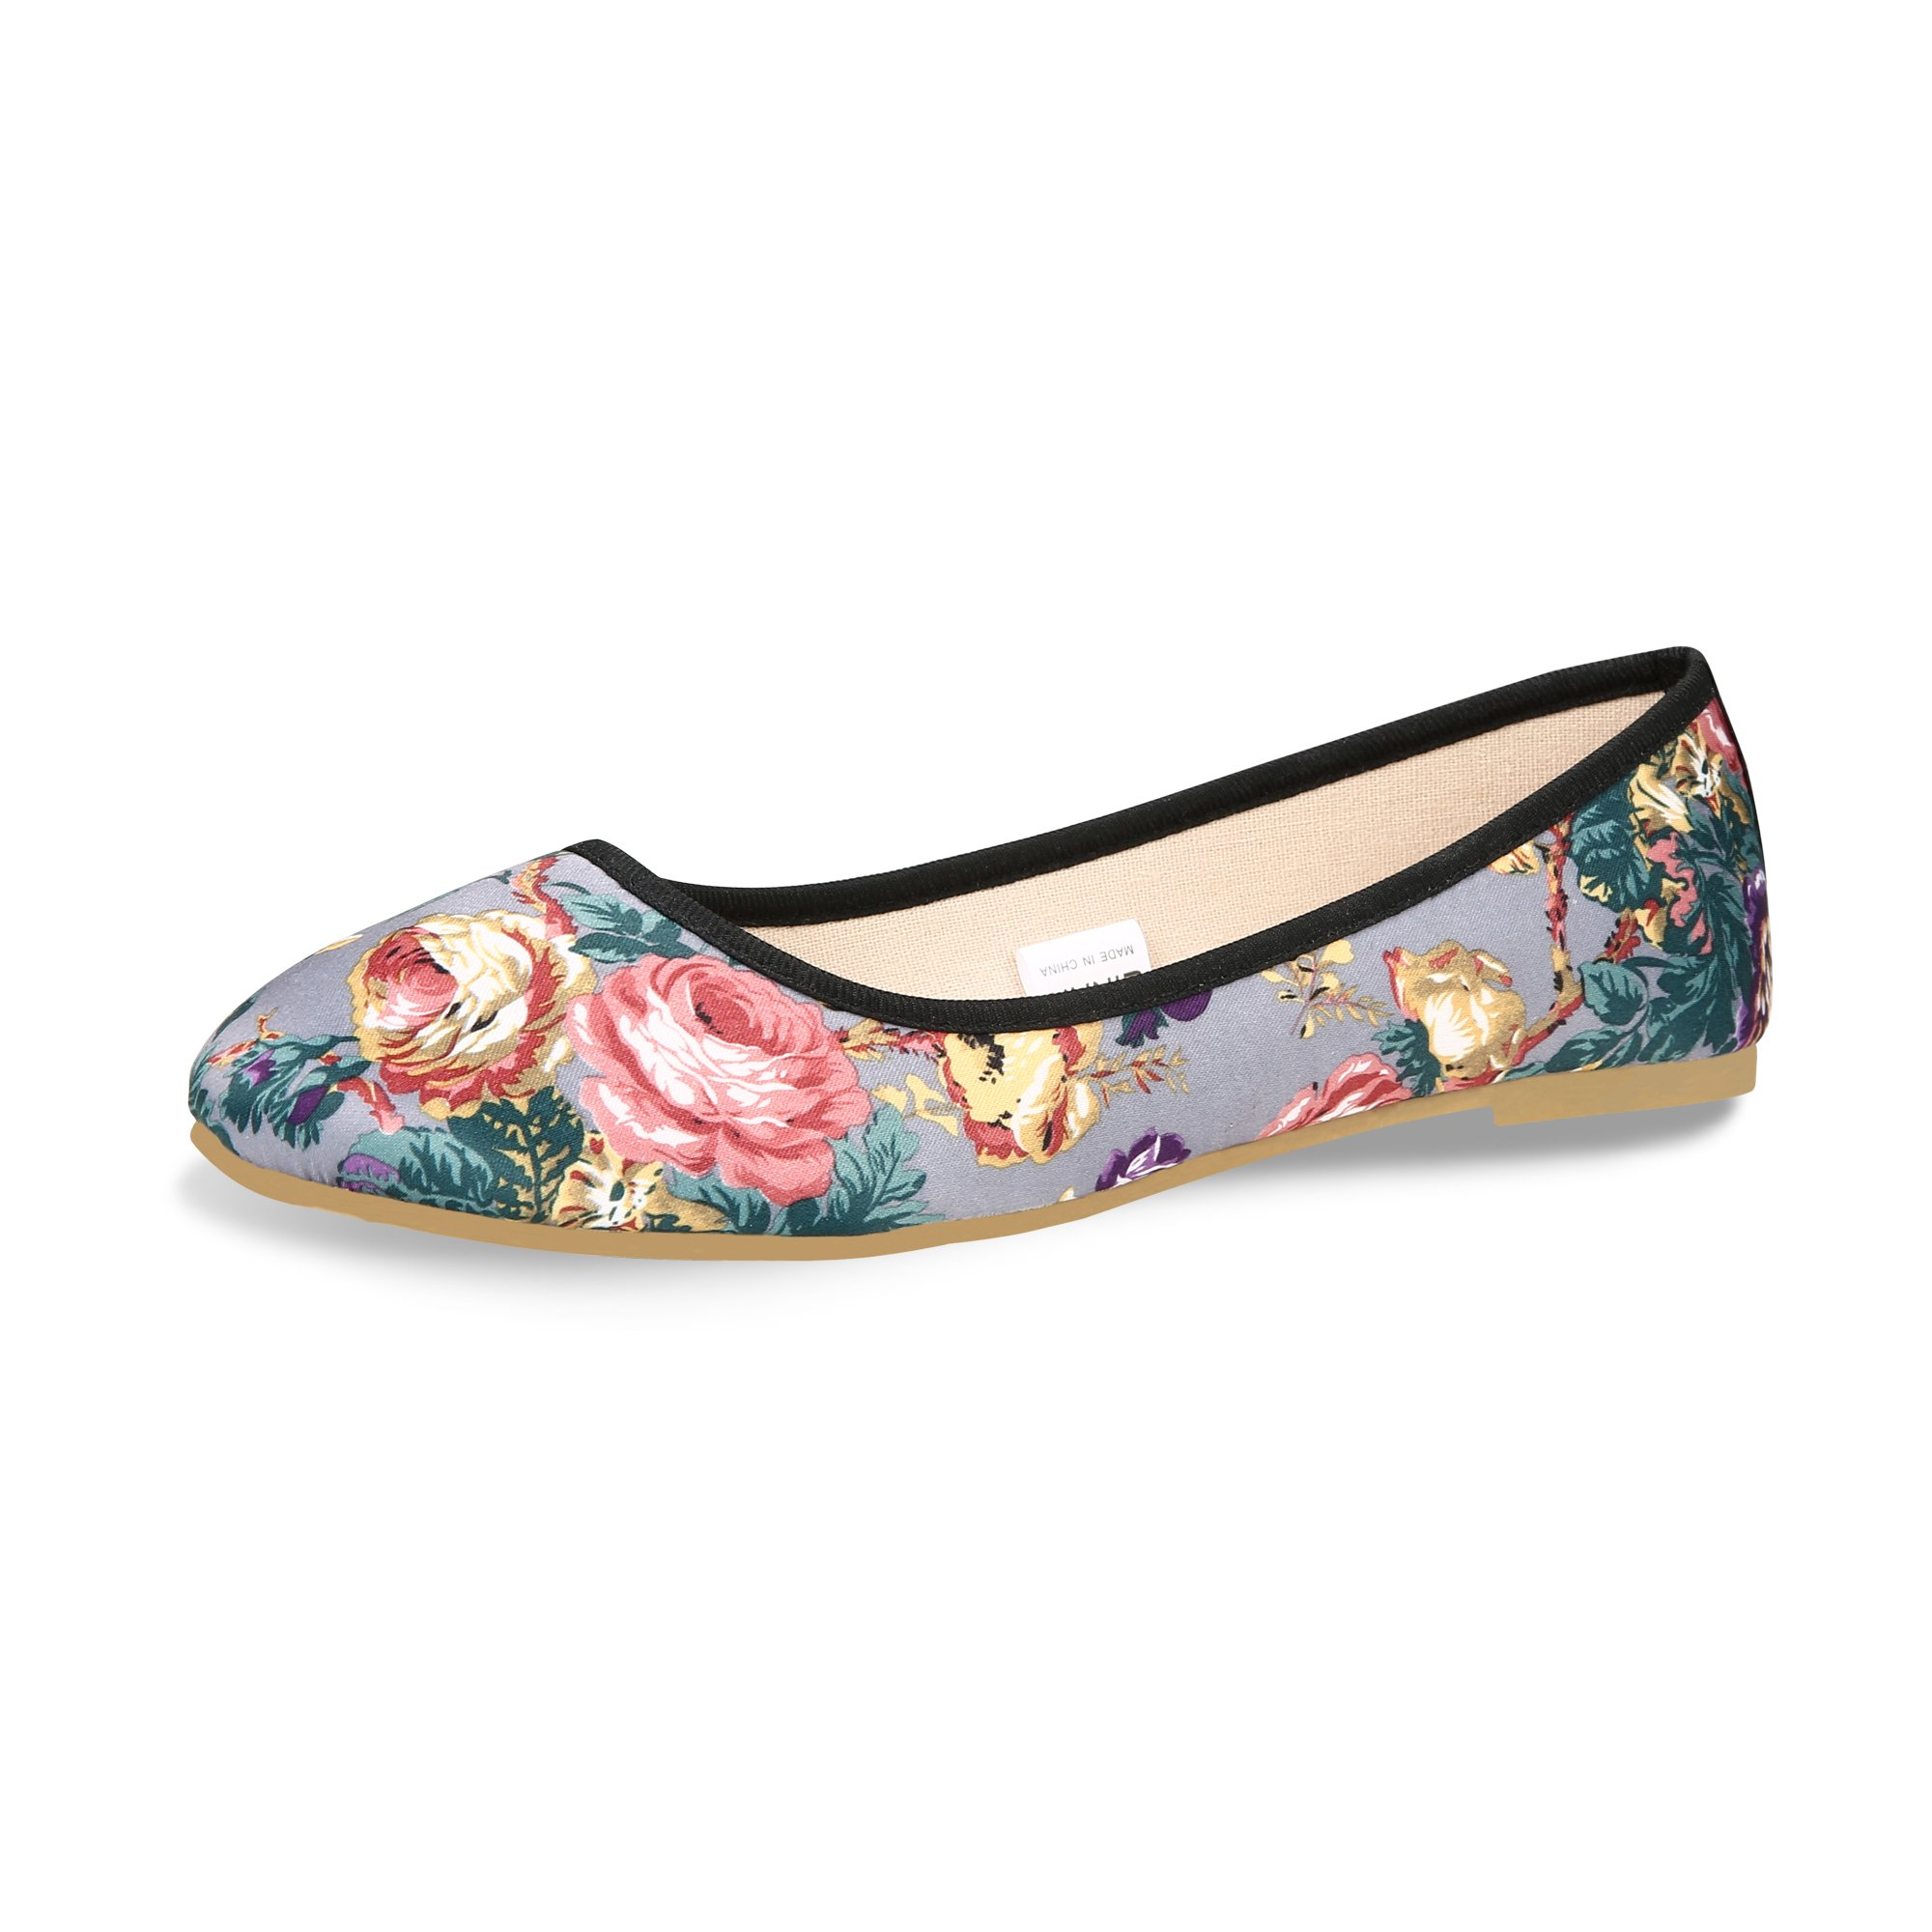 CINAK Flat Shoes for Women with Floral Printing Low-Cut Pointed Toe (7-7.5 B(M) US/EU39/CN39/24.5CM, Grey)